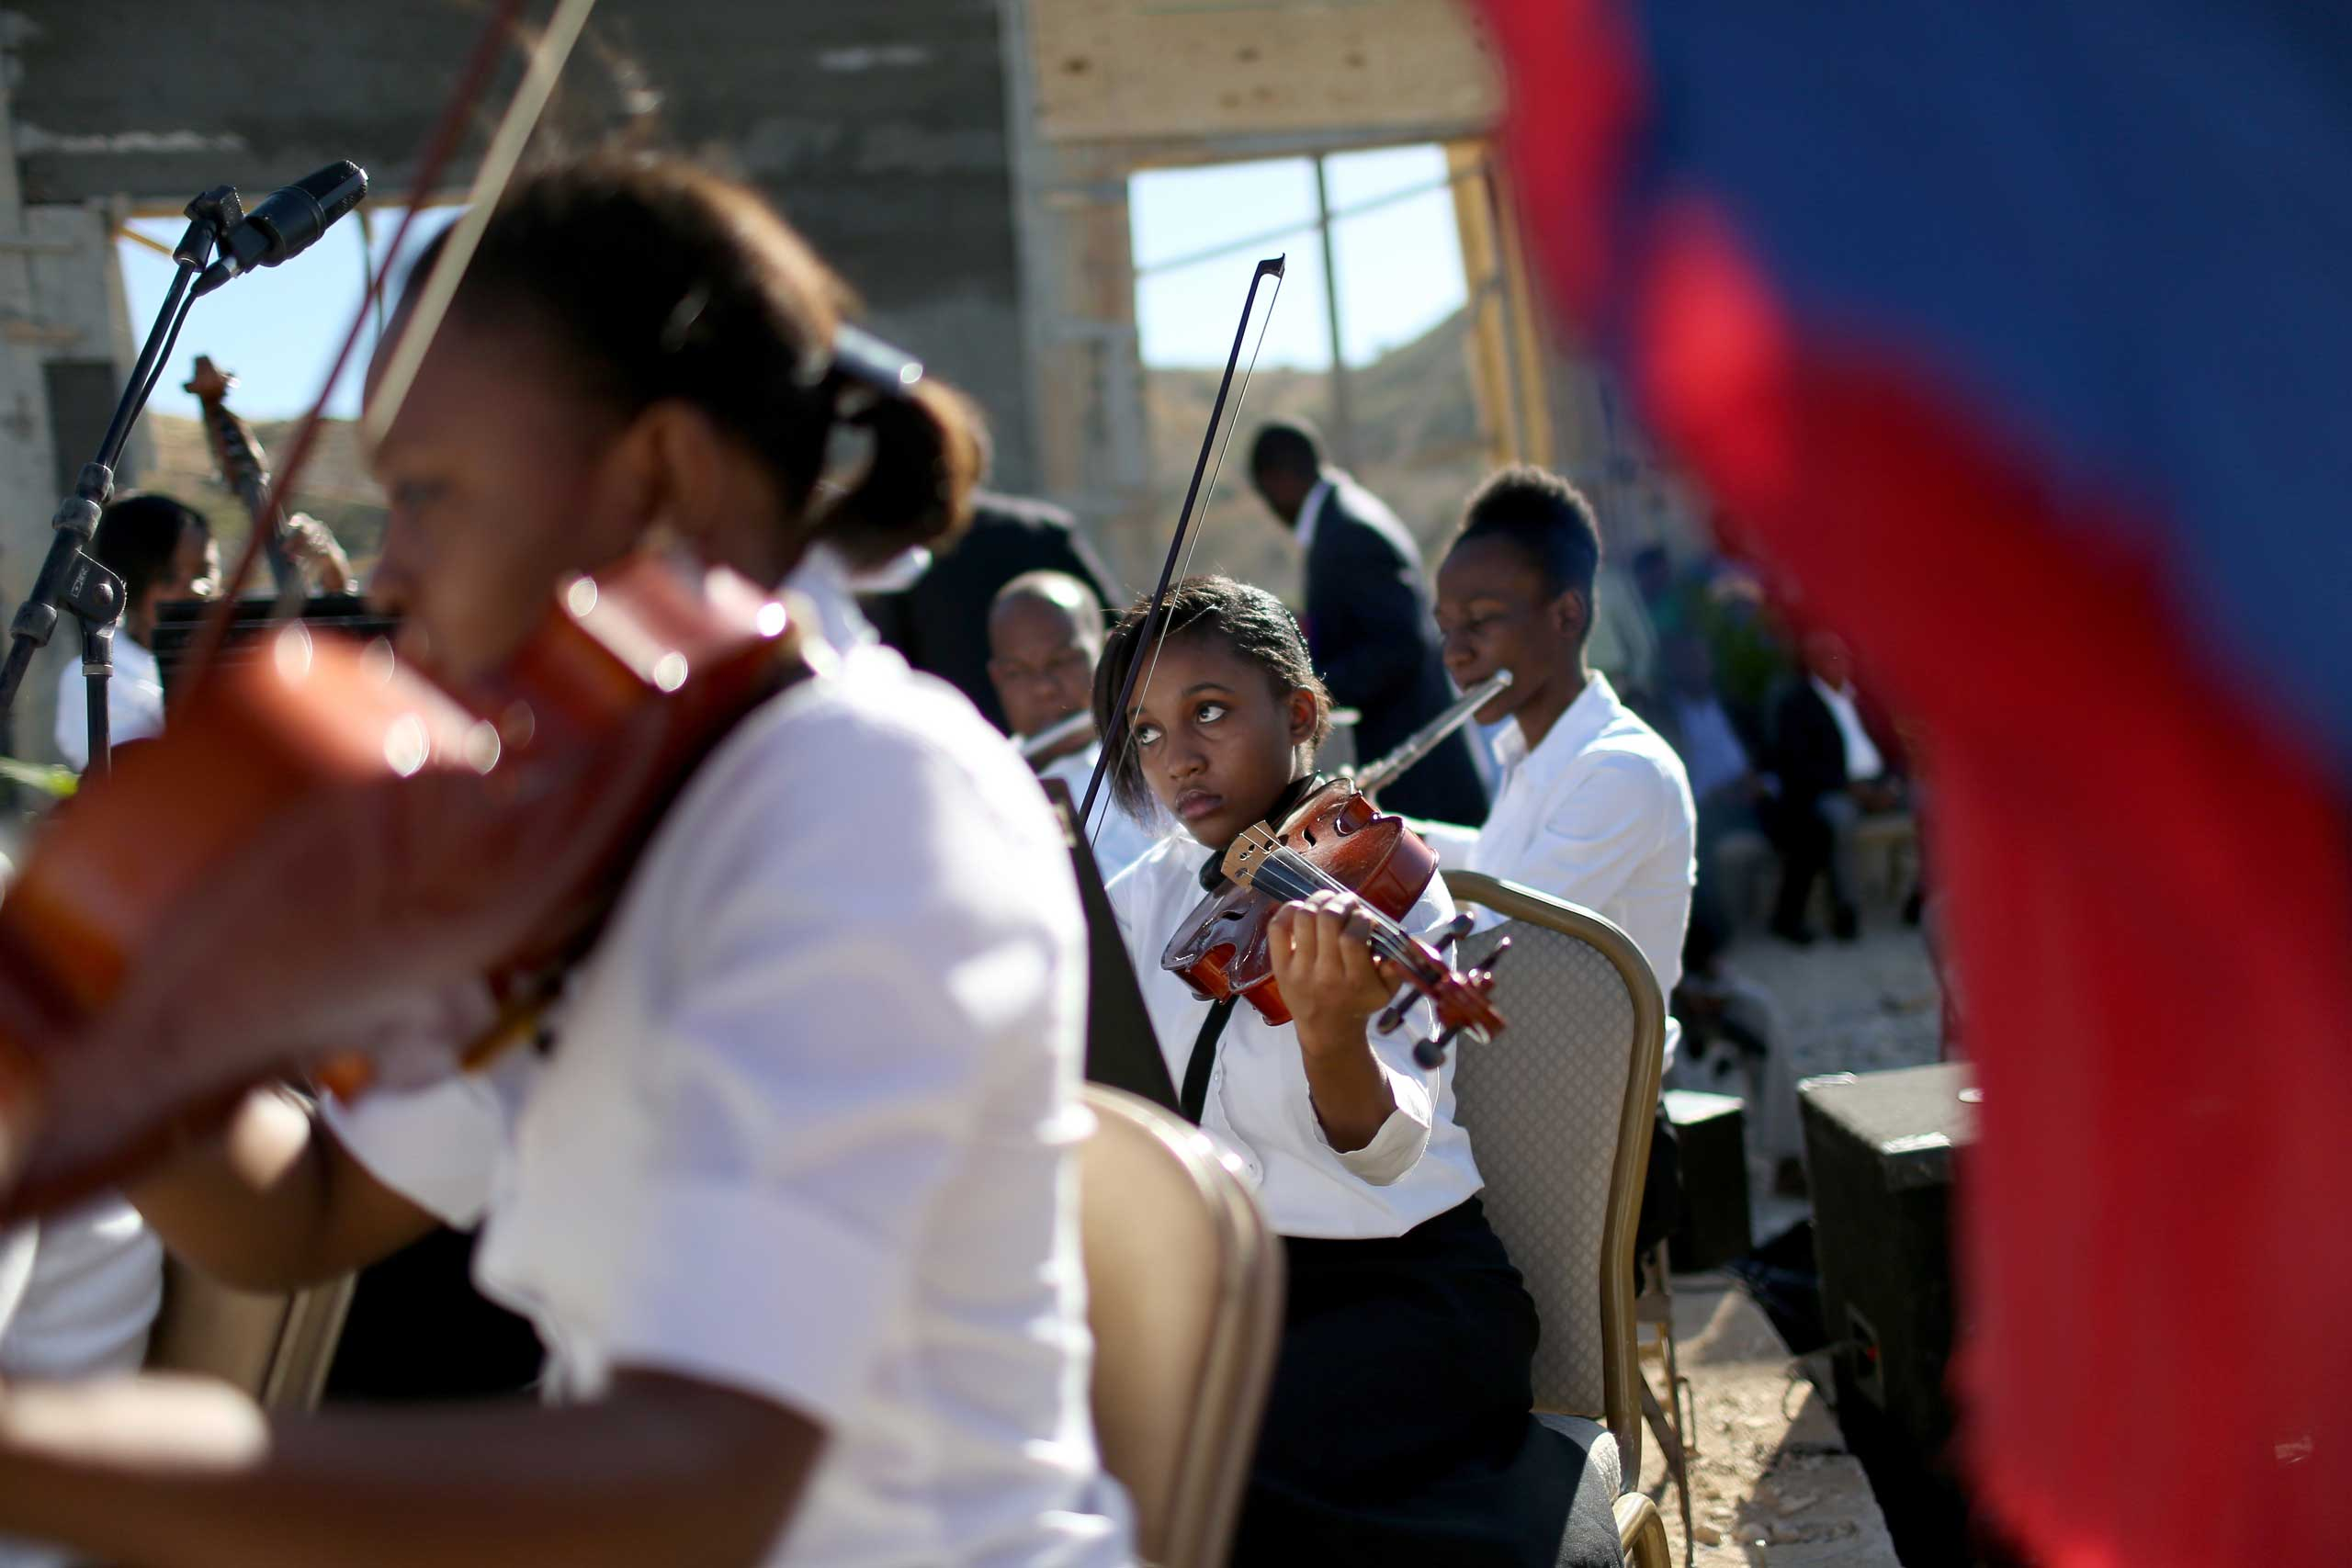 Jan. 12, 2015. Musicians play during a ceremony to remember those killed and buried in the mass grave in Titanyen, Haiti, during a service for the 5-year anniversary of a magnitude 7.0 earthquake that killed                                316,000 people.